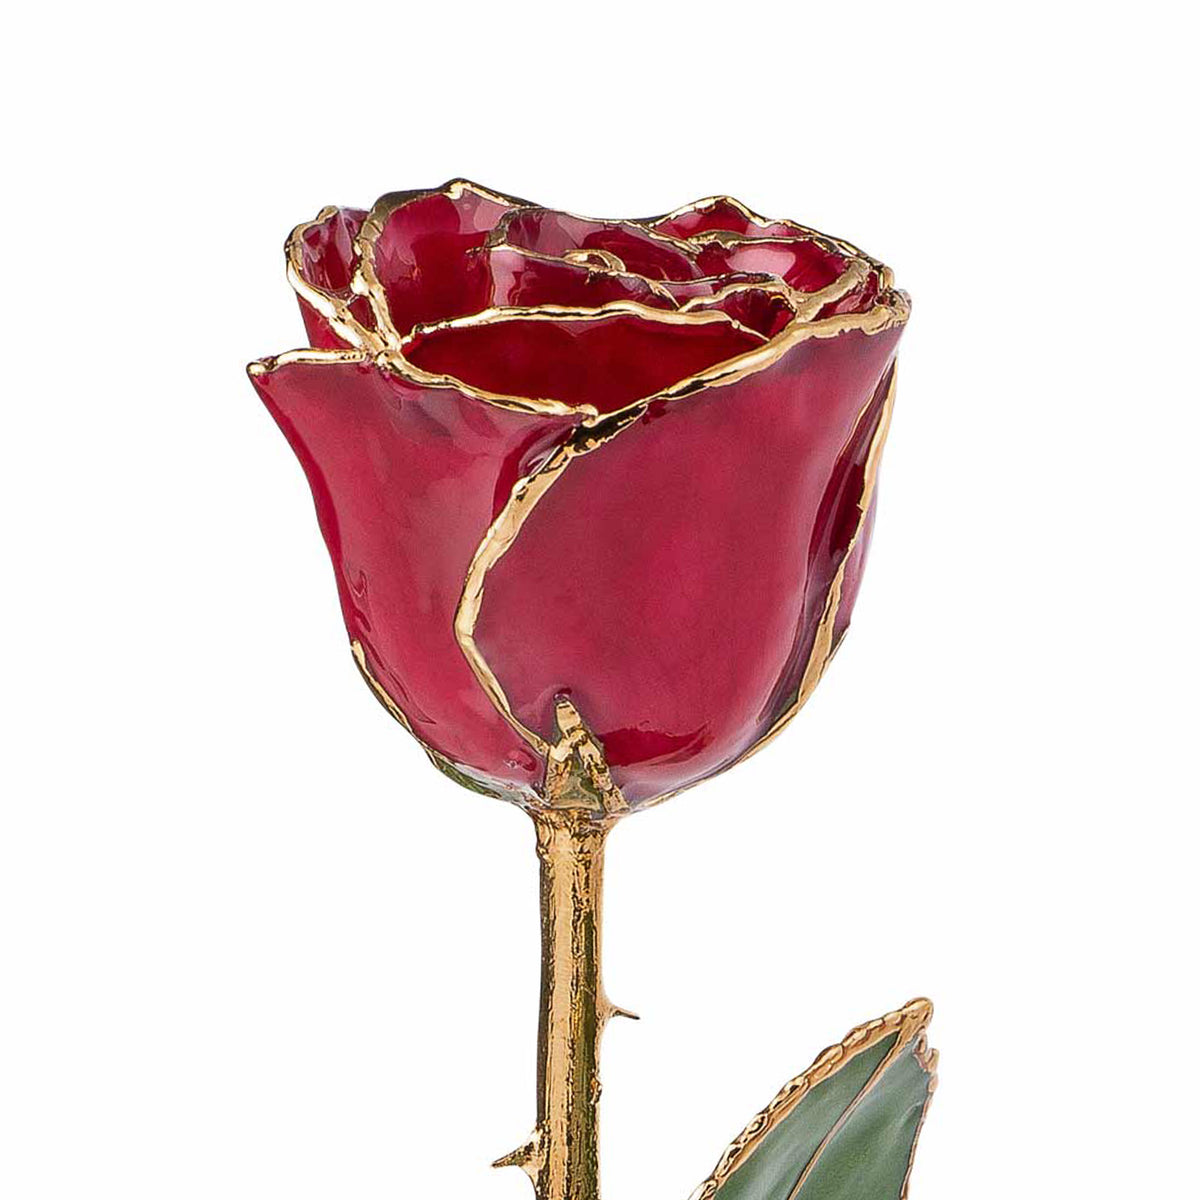 24K Gold Trimmed Forever Rose with Deep Red Burgundy Petals with View of Stem, Leaves, and Rose Petals and Showing Detail of Gold Trim Top View